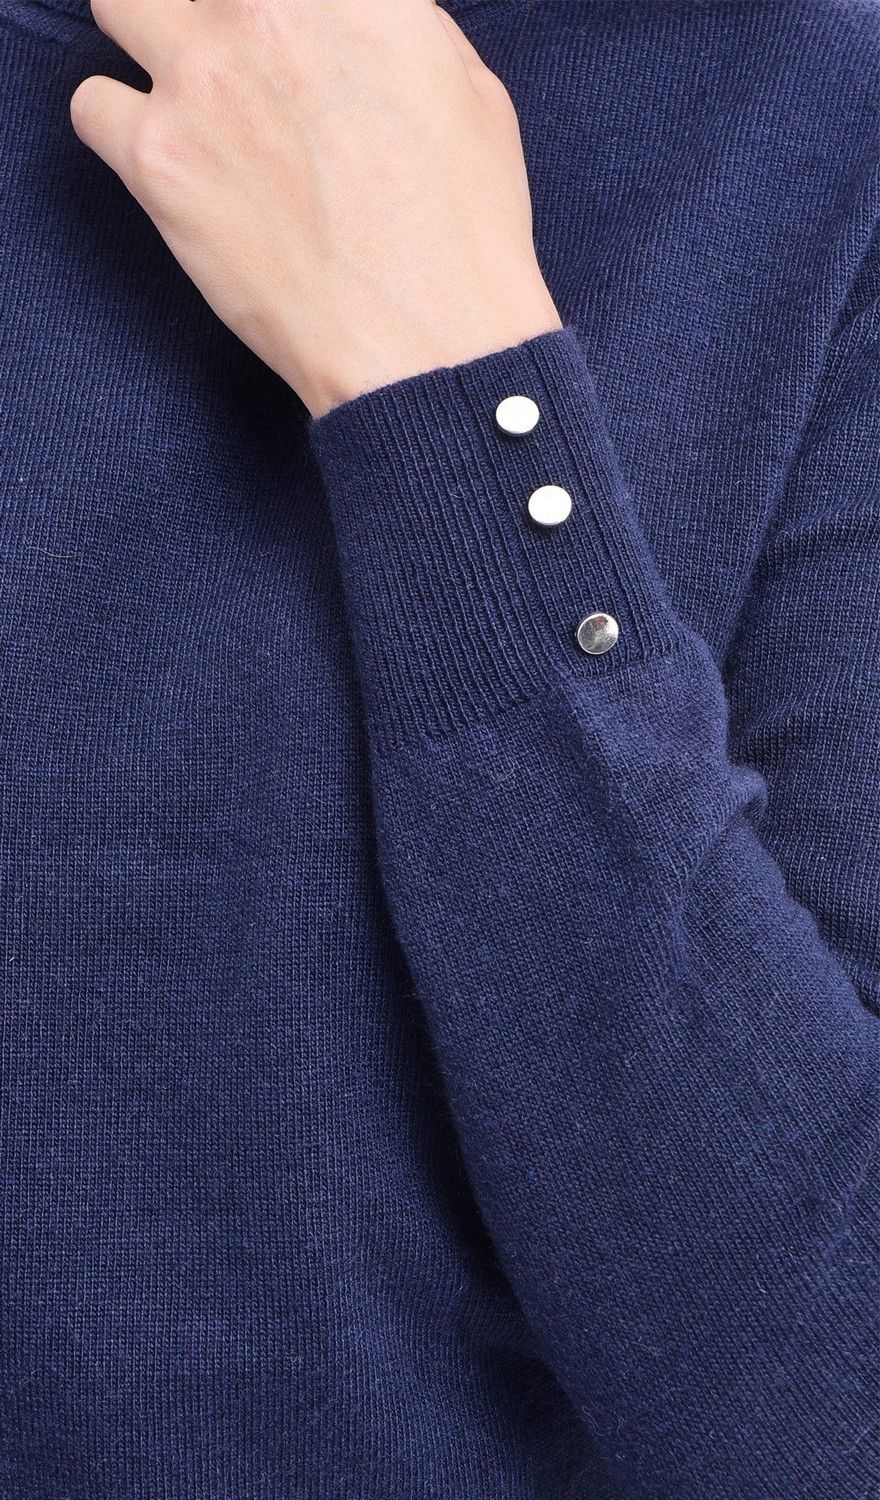 C&JO Turtleneck Sweater with Buttoned Sleeves in Navy